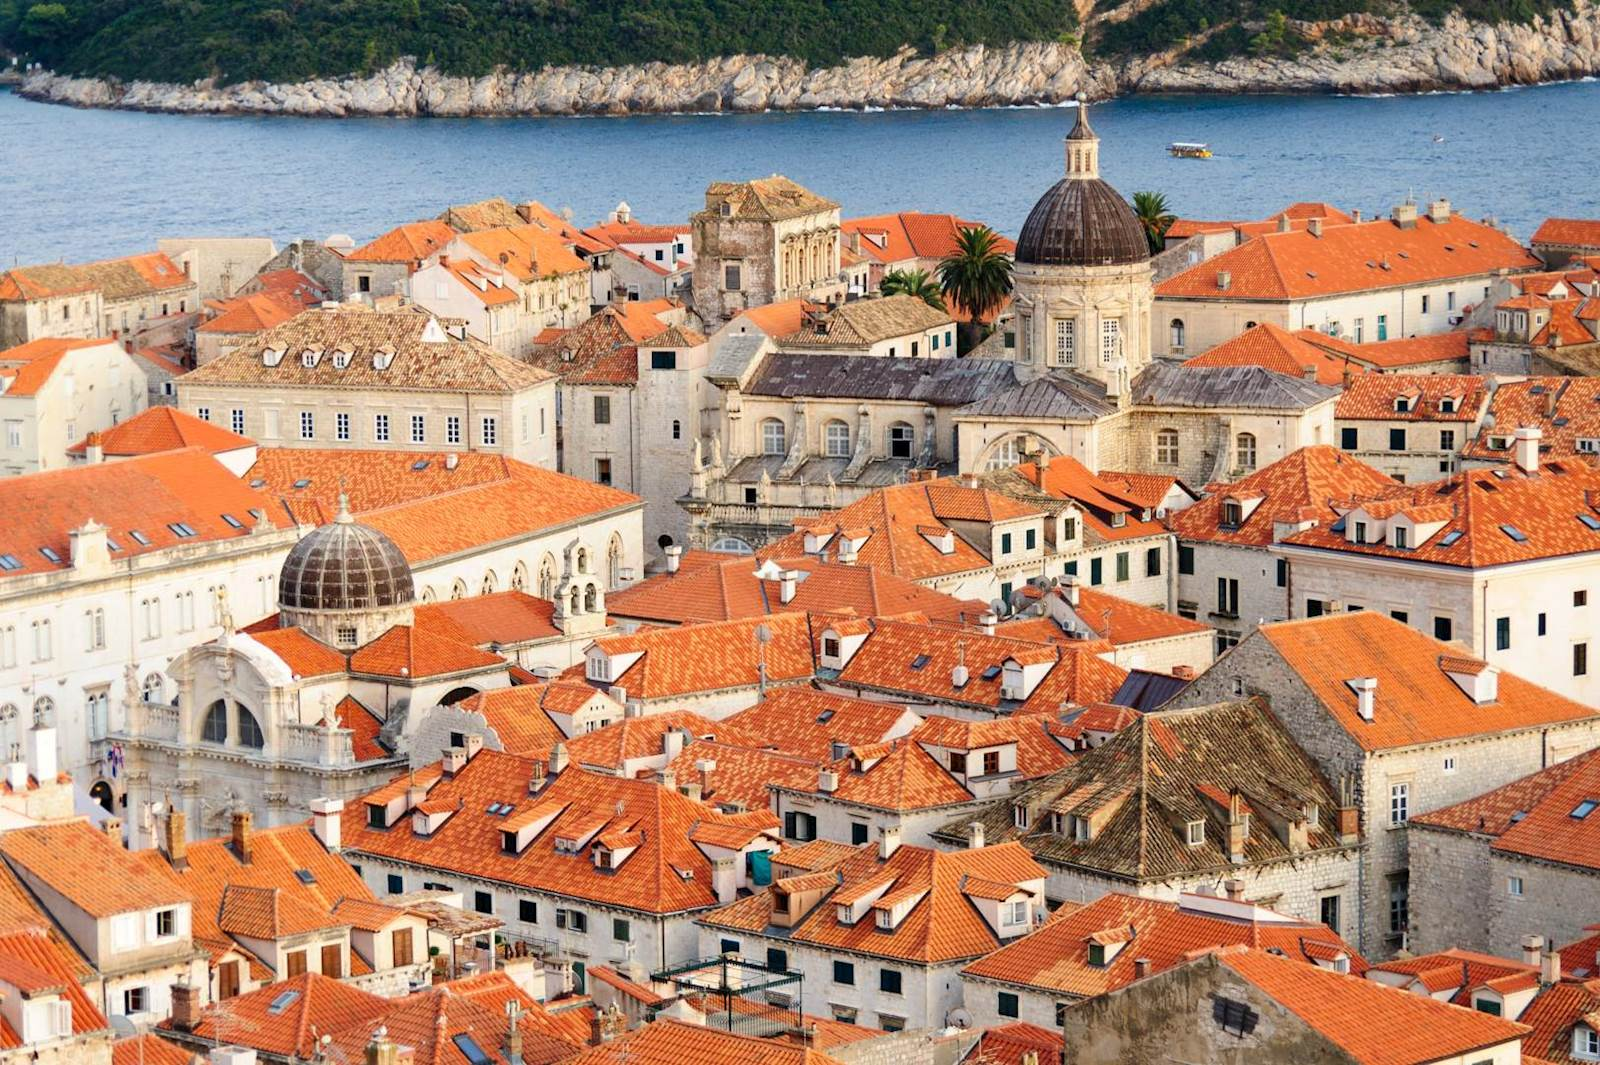 -images-excursions-discover-dubrovnik--05-dubrovnik-old-town-view-from-north-side-of-walls.jpg